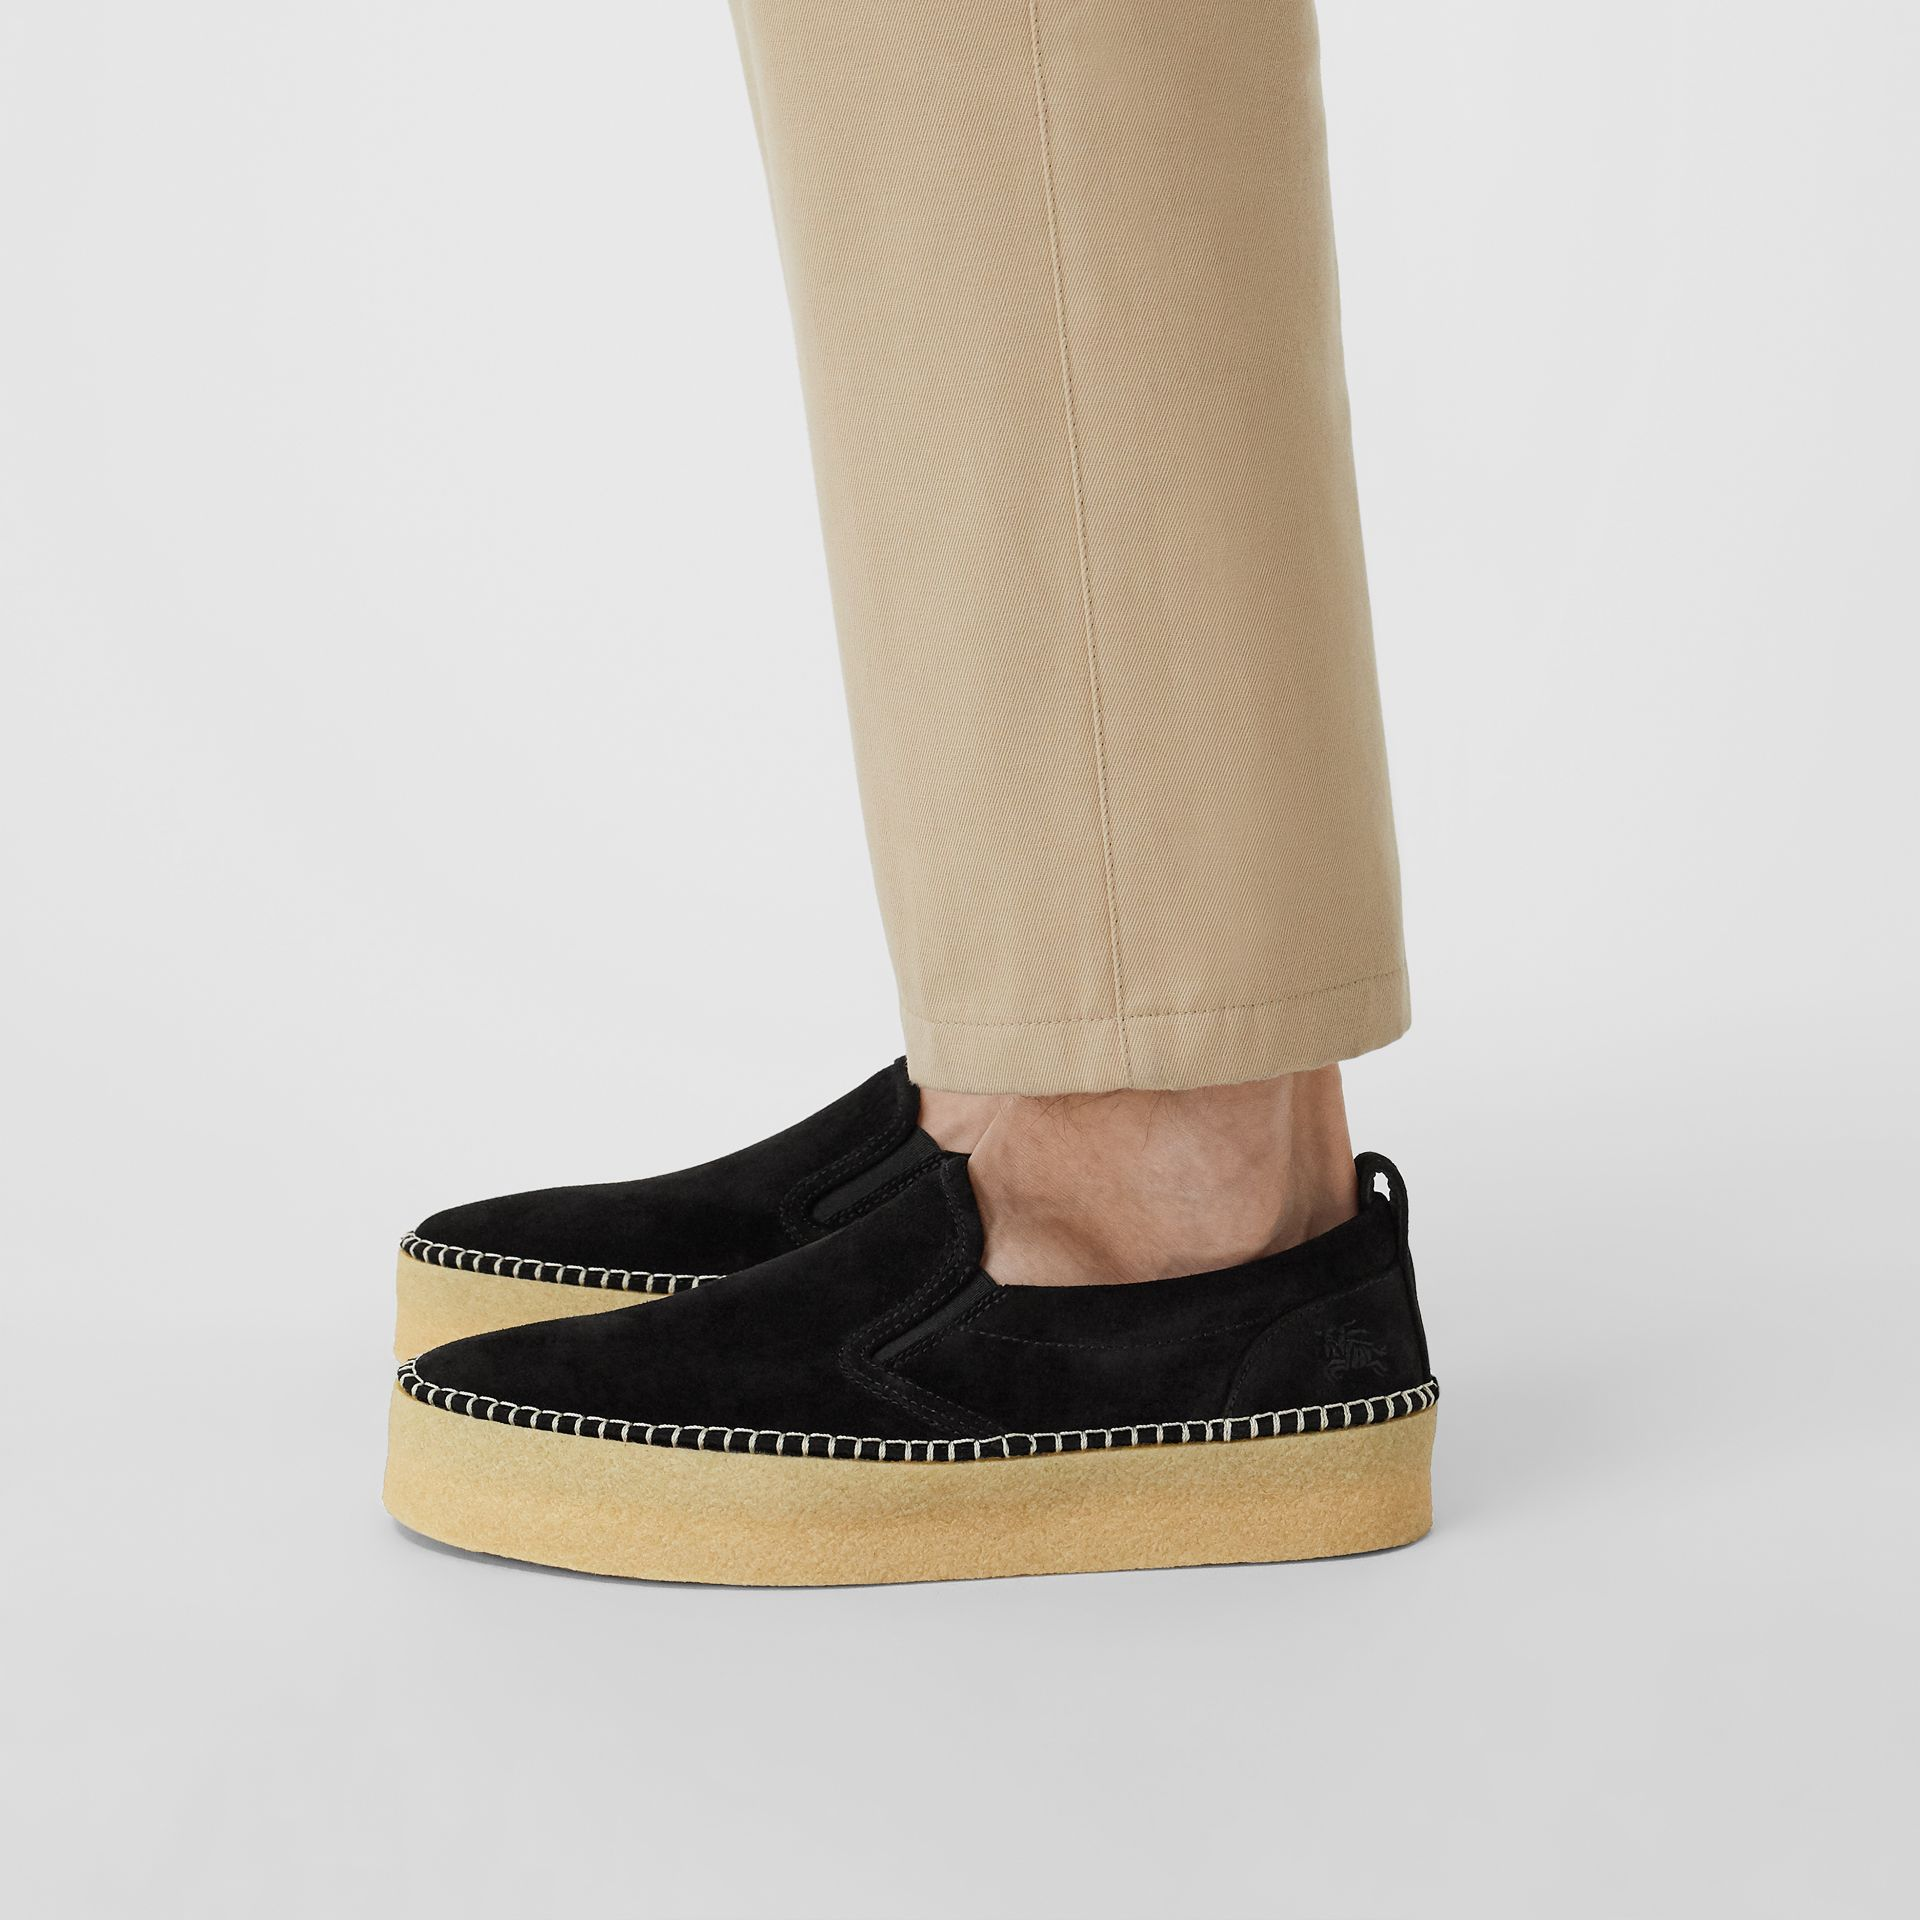 Suede Slip-on Sneakers in Black - Men | Burberry - gallery image 2